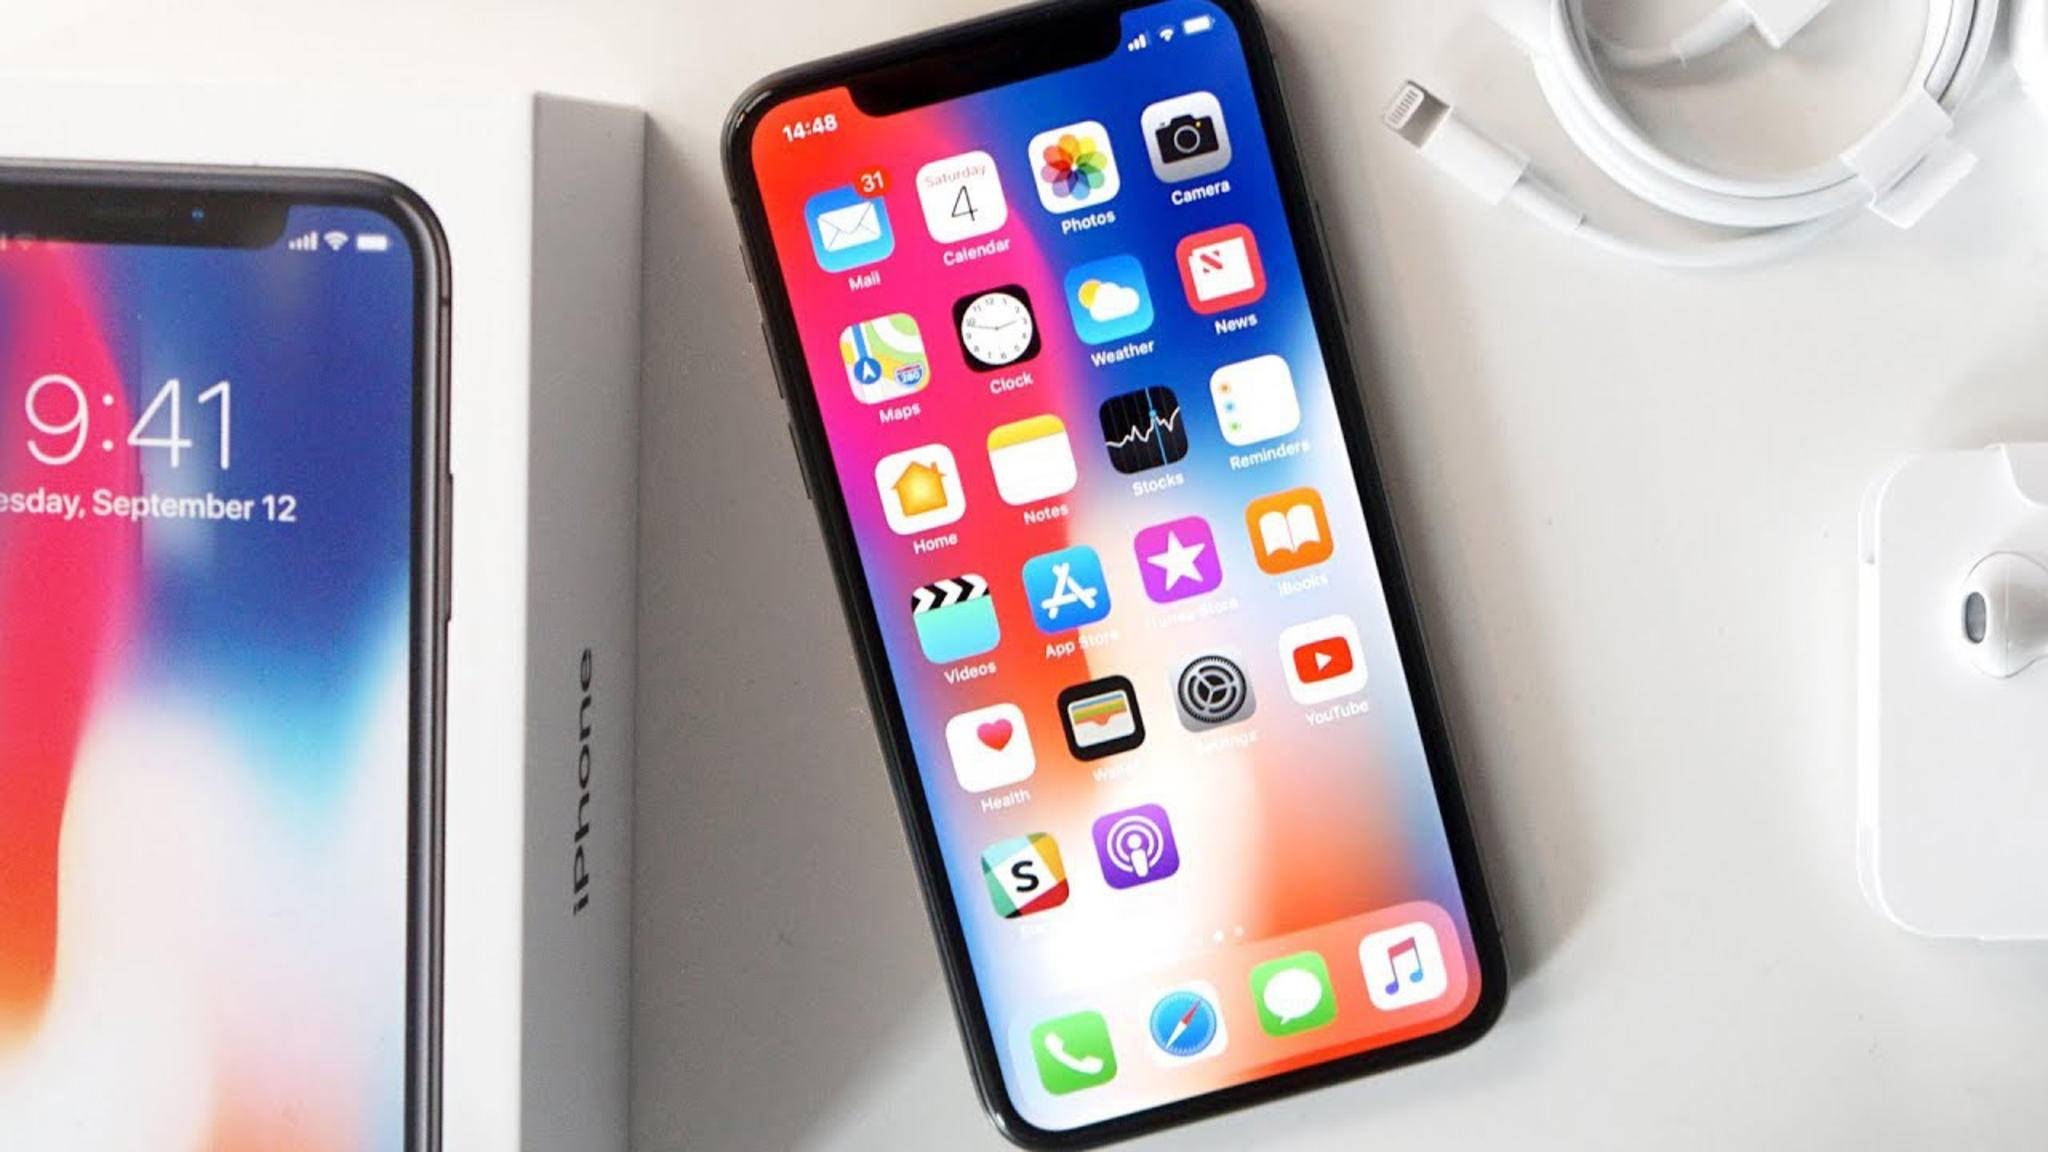 Iphone 11 batterie in prozent